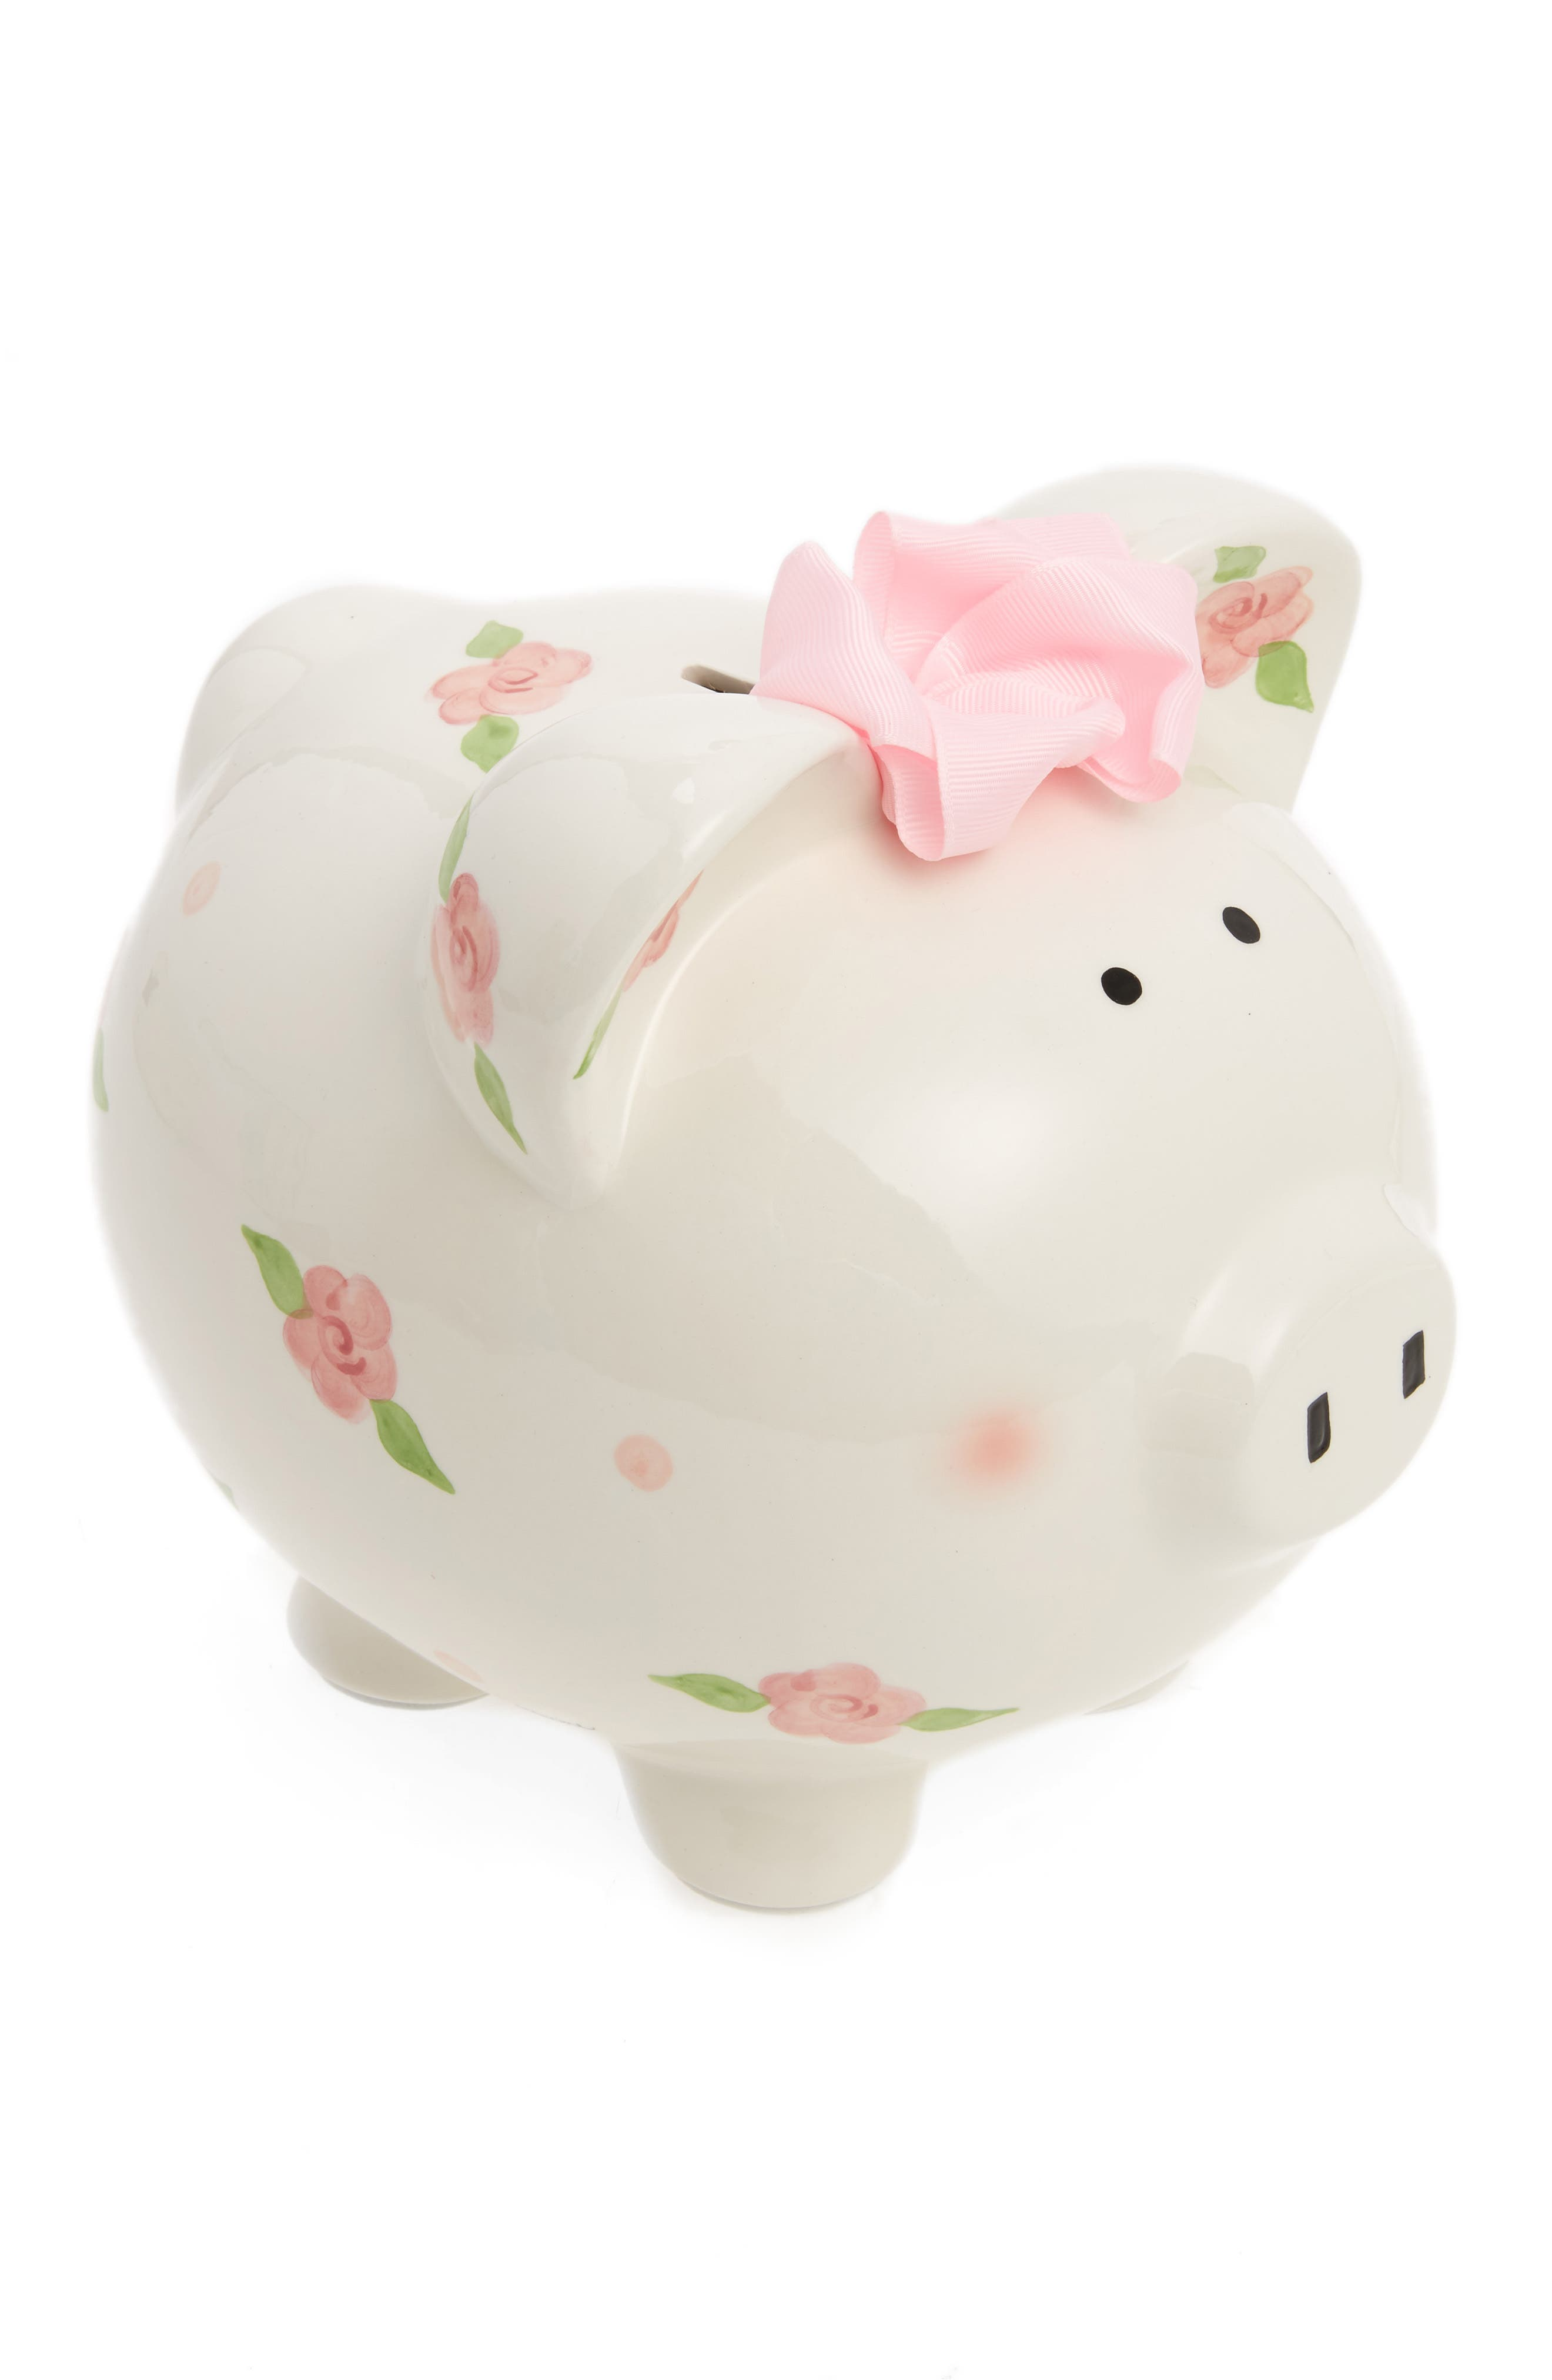 Child to Cherish Embellished Piggy Bank